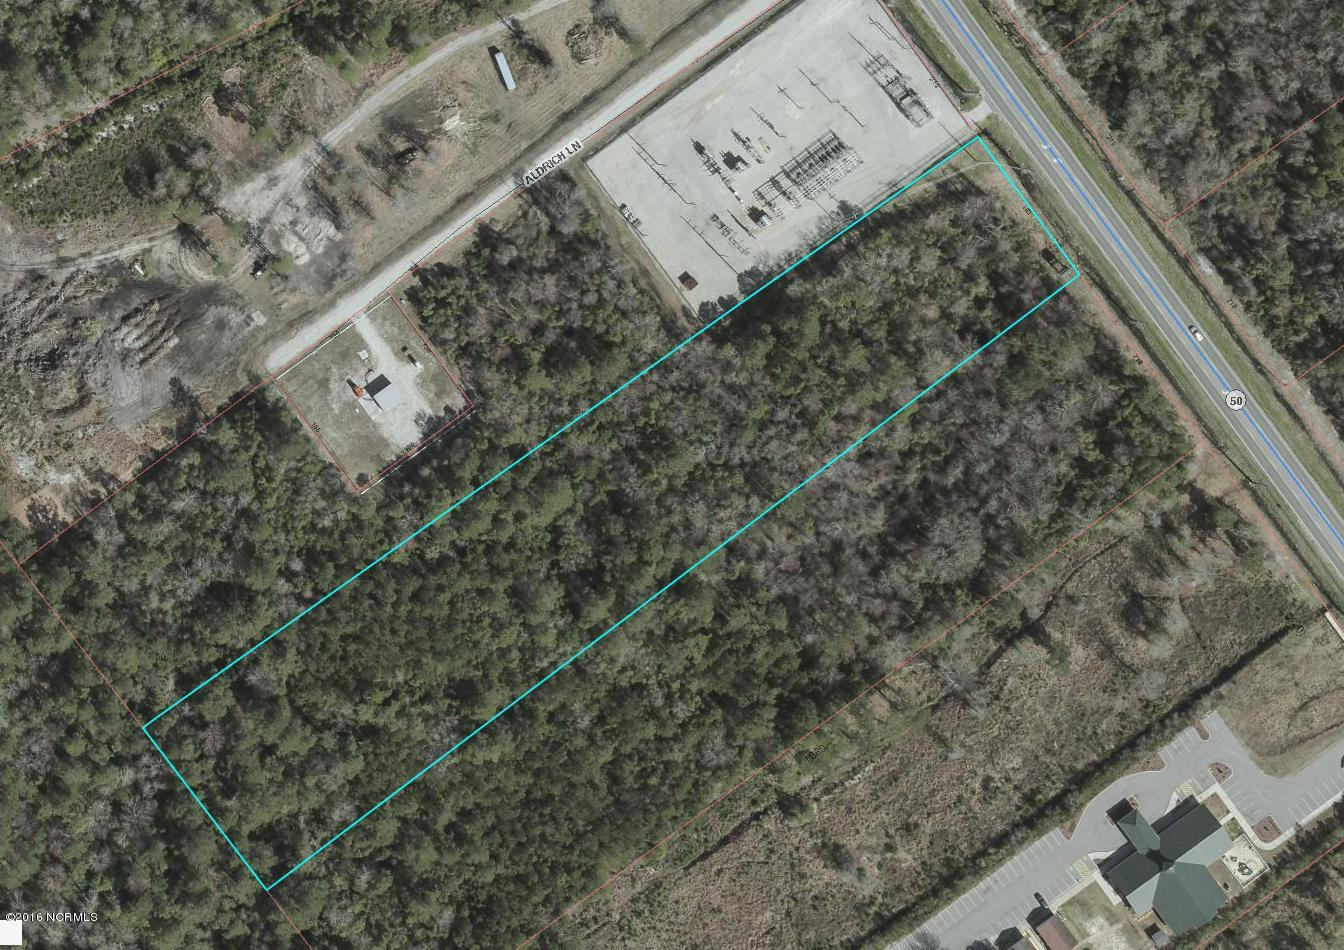 Lot 49 Nc Hwy 50, Surf City, North Carolina 28445, ,Wooded,For sale,Nc Hwy 50,100036525